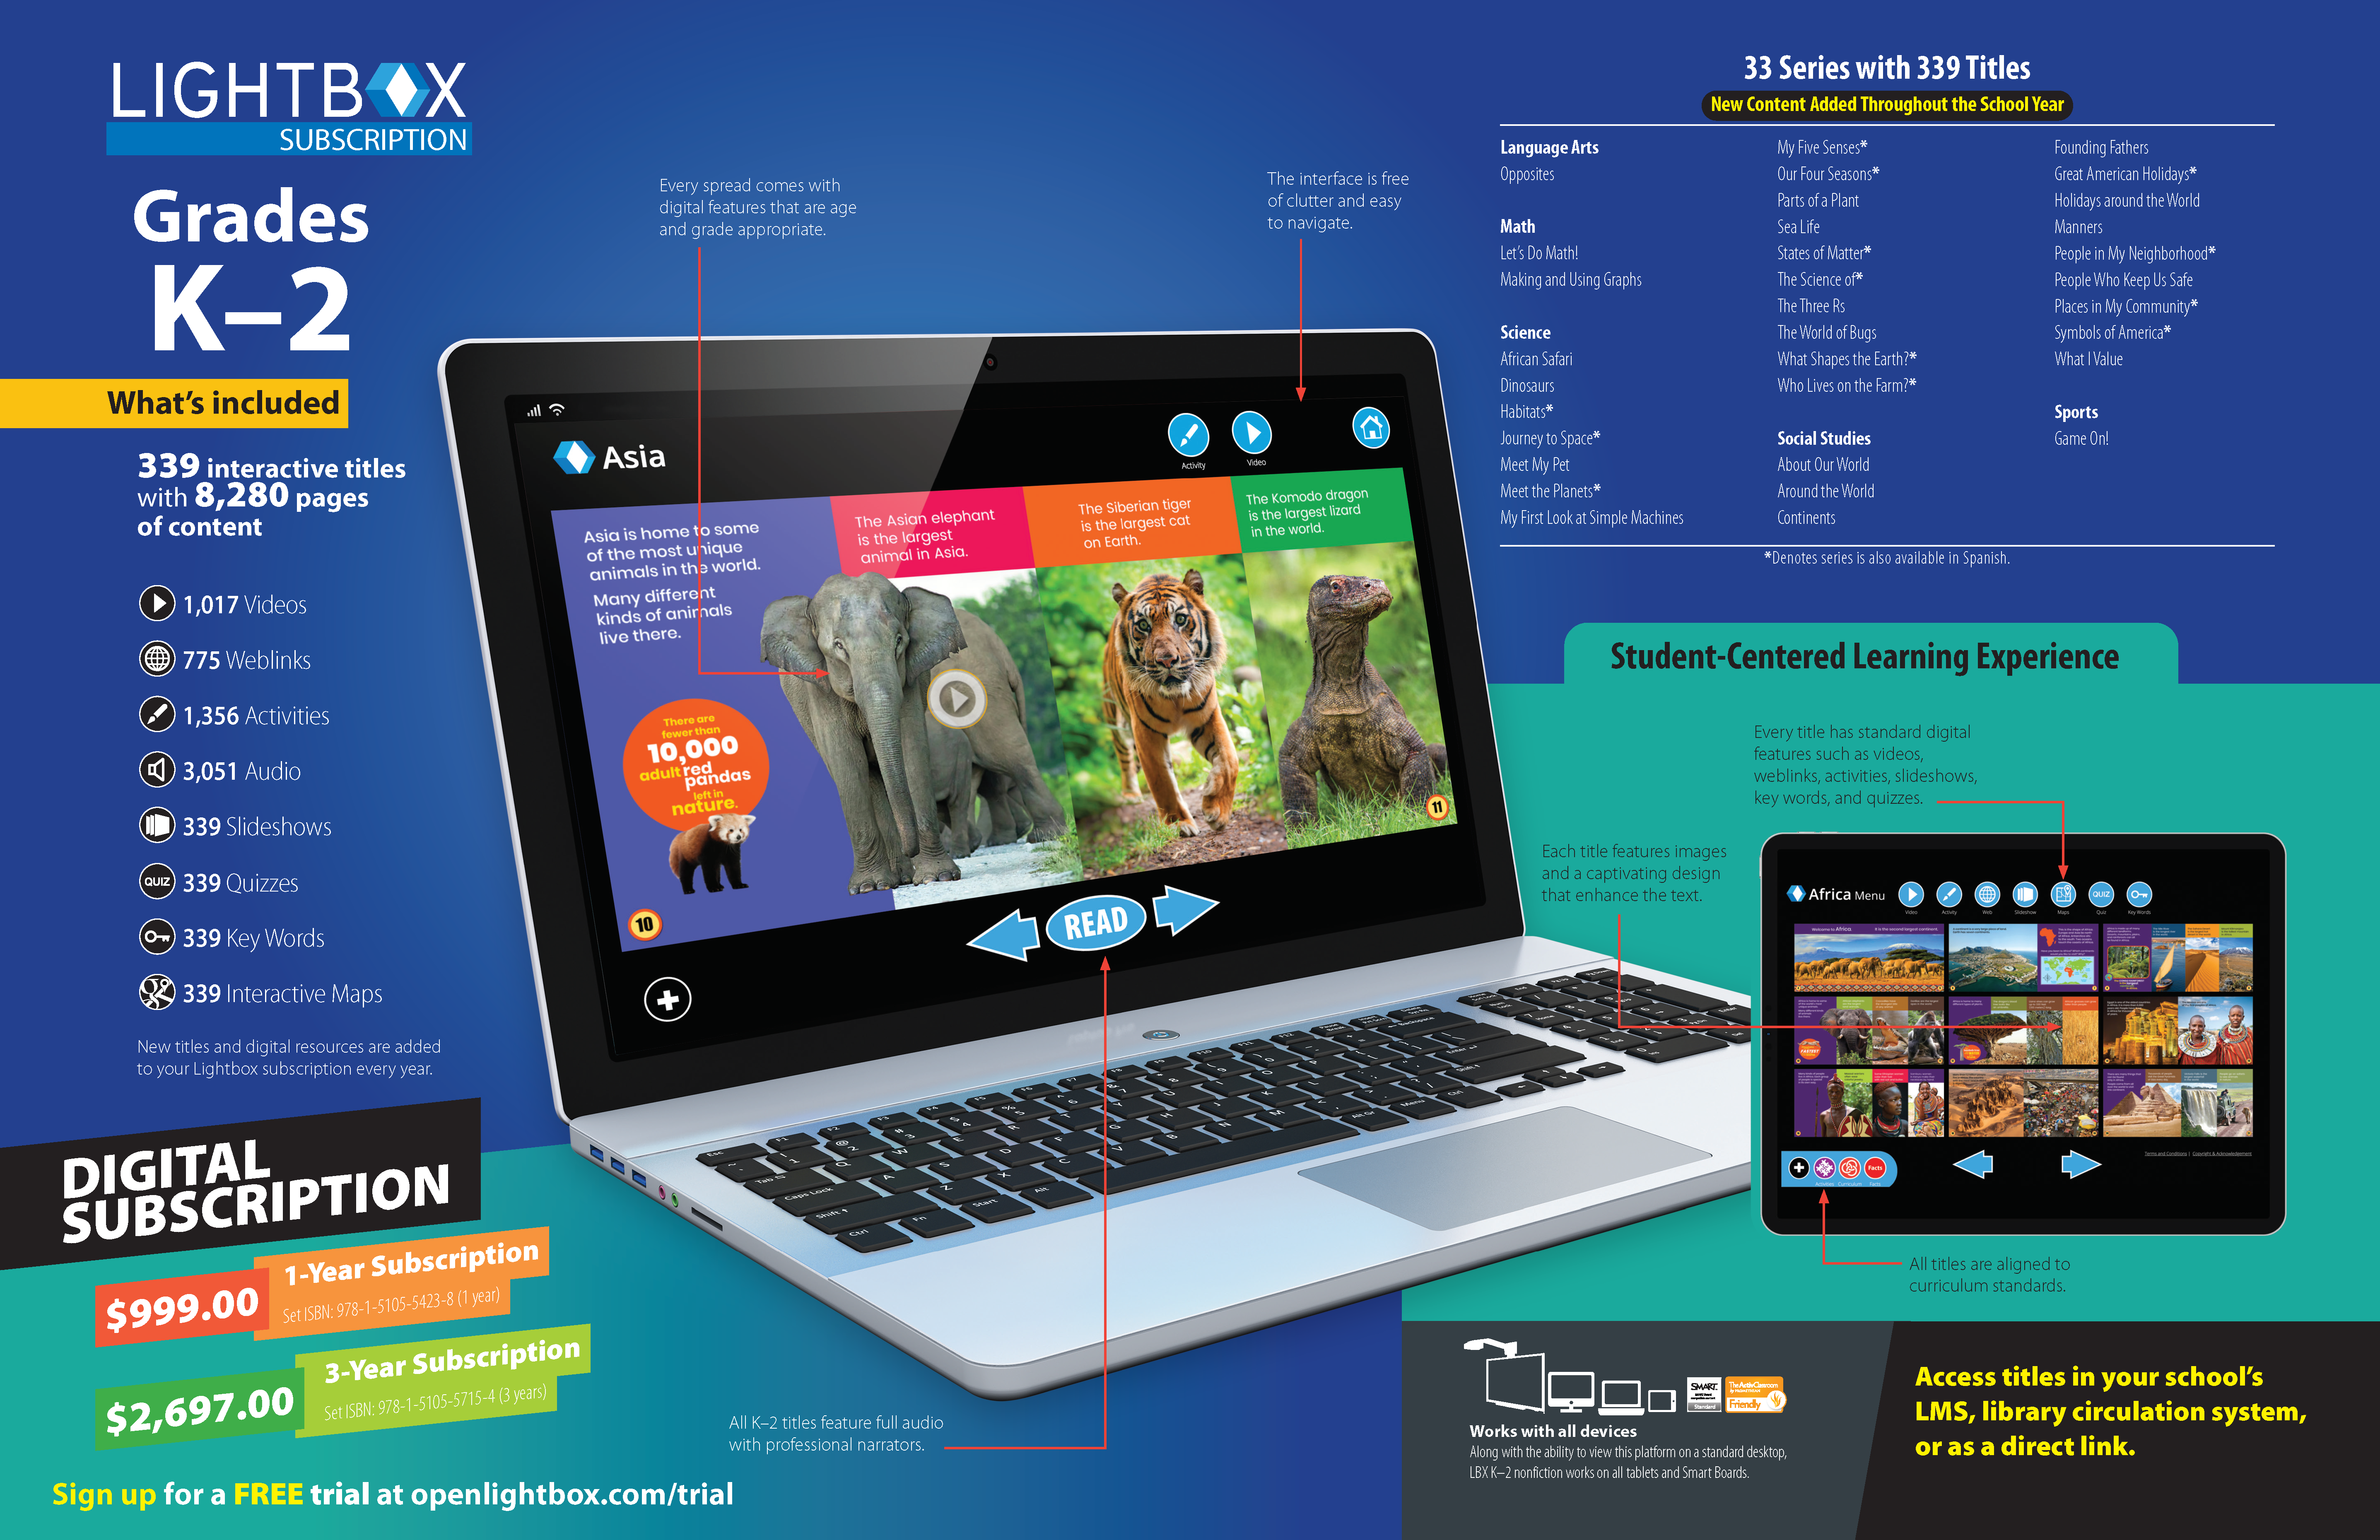 Lightbox+Subscription+Brochure+2020+Complete_Page_2